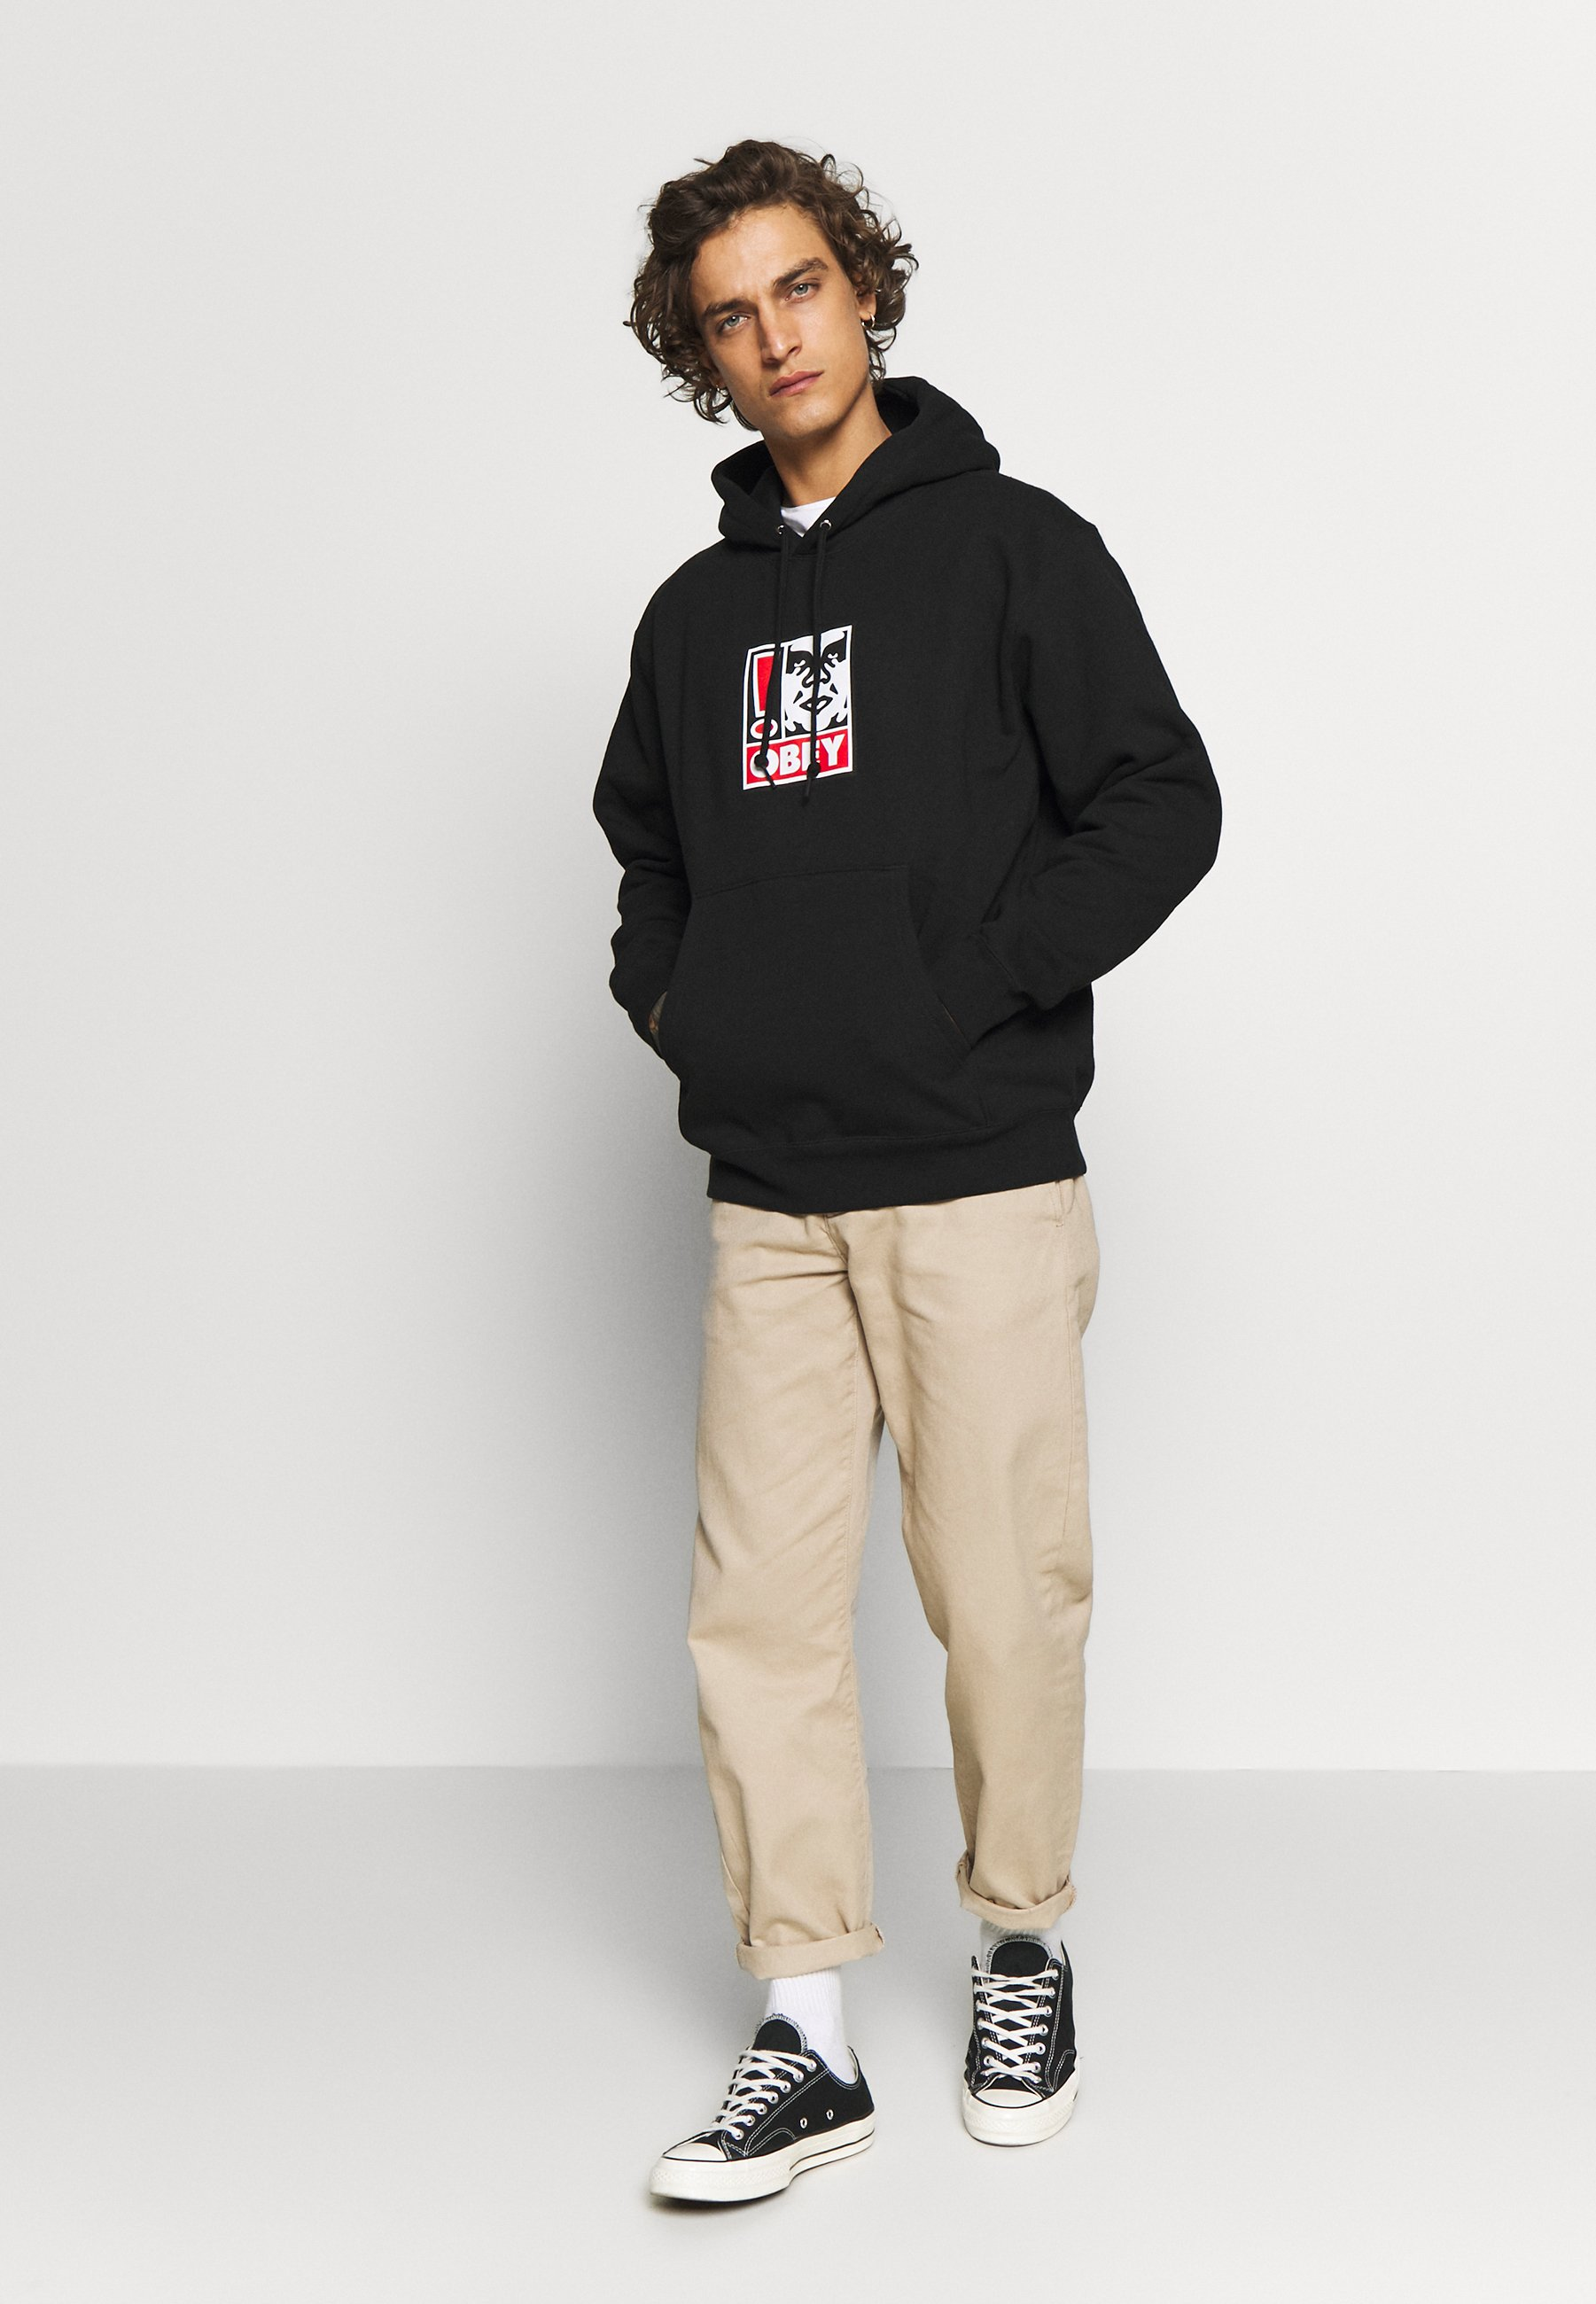 Obey Clothing OBEY EXCLAMATION POINT Hoodie black